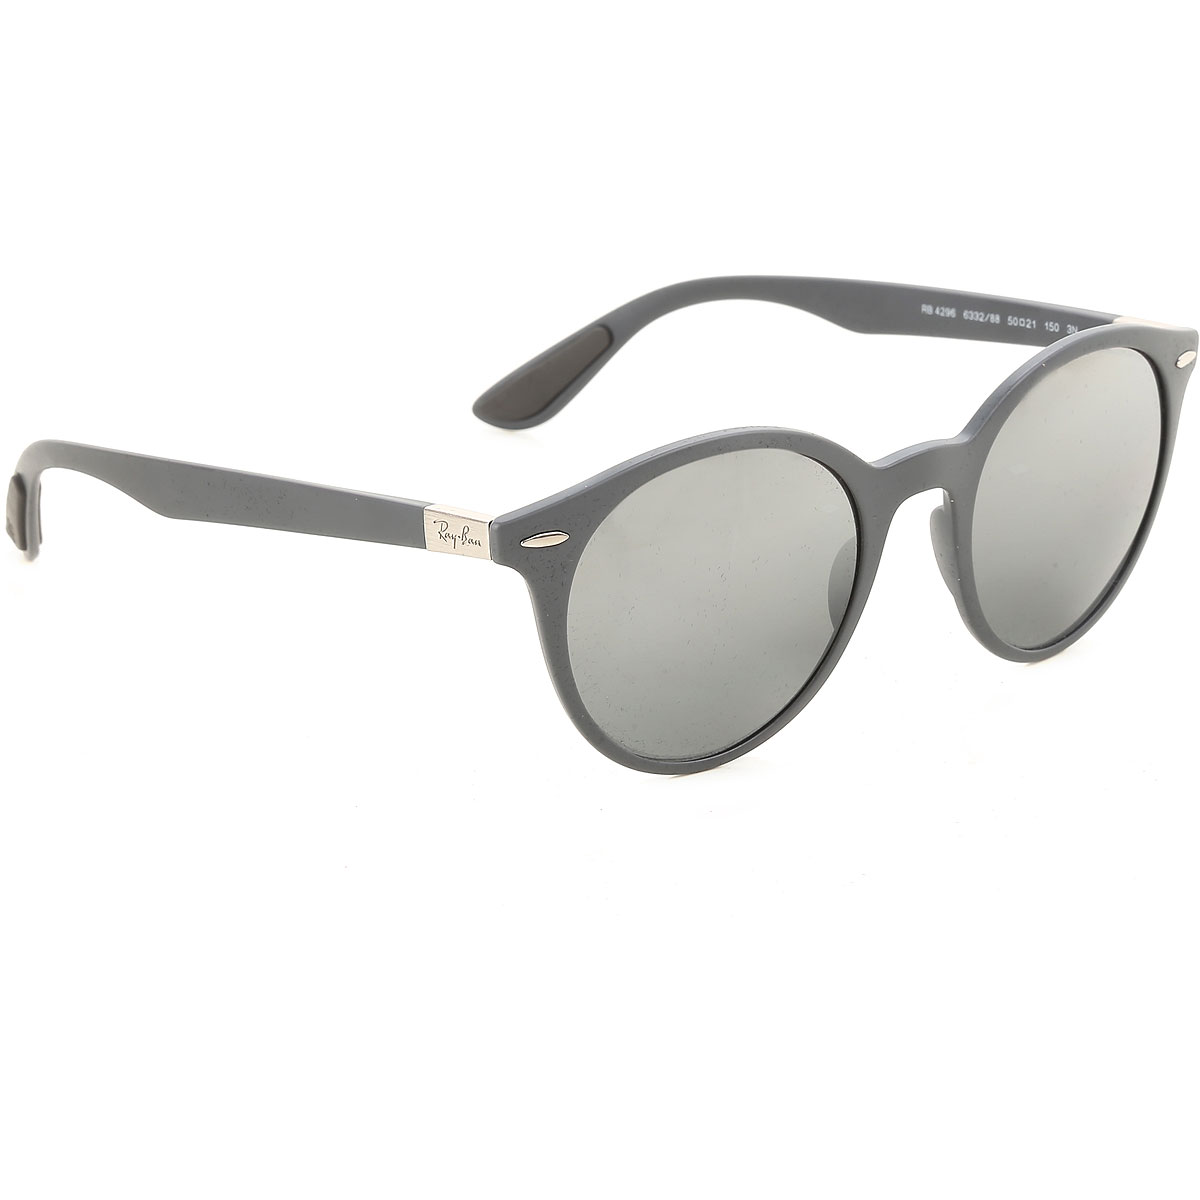 ... Ray Ban Sunglasses. FULL SCREEN. 1) Drag to view product 2) Double  click to start rotation 63fdd70b6f